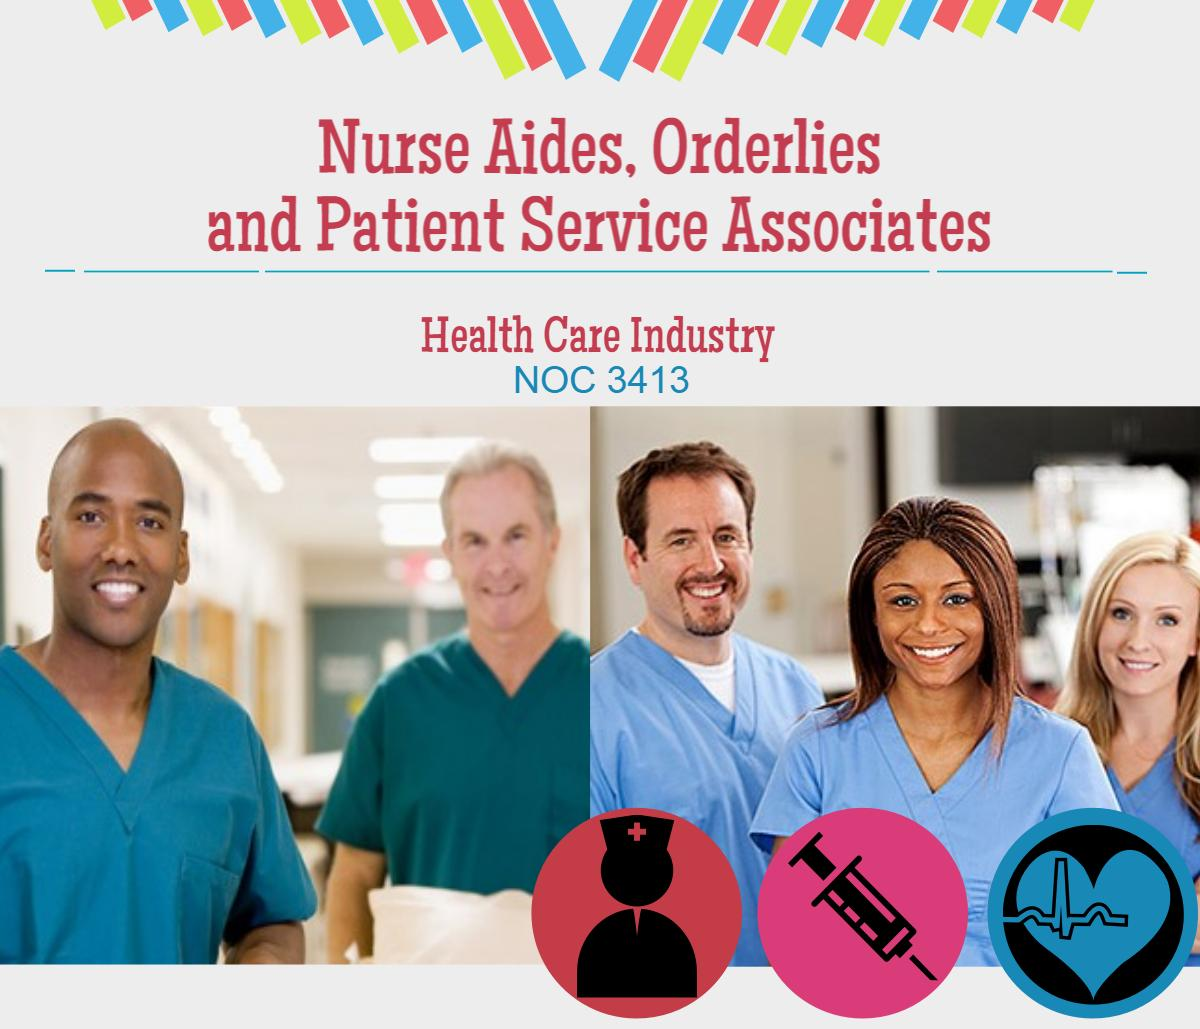 Nurse Aides, Orderlies and Patient Service Associates